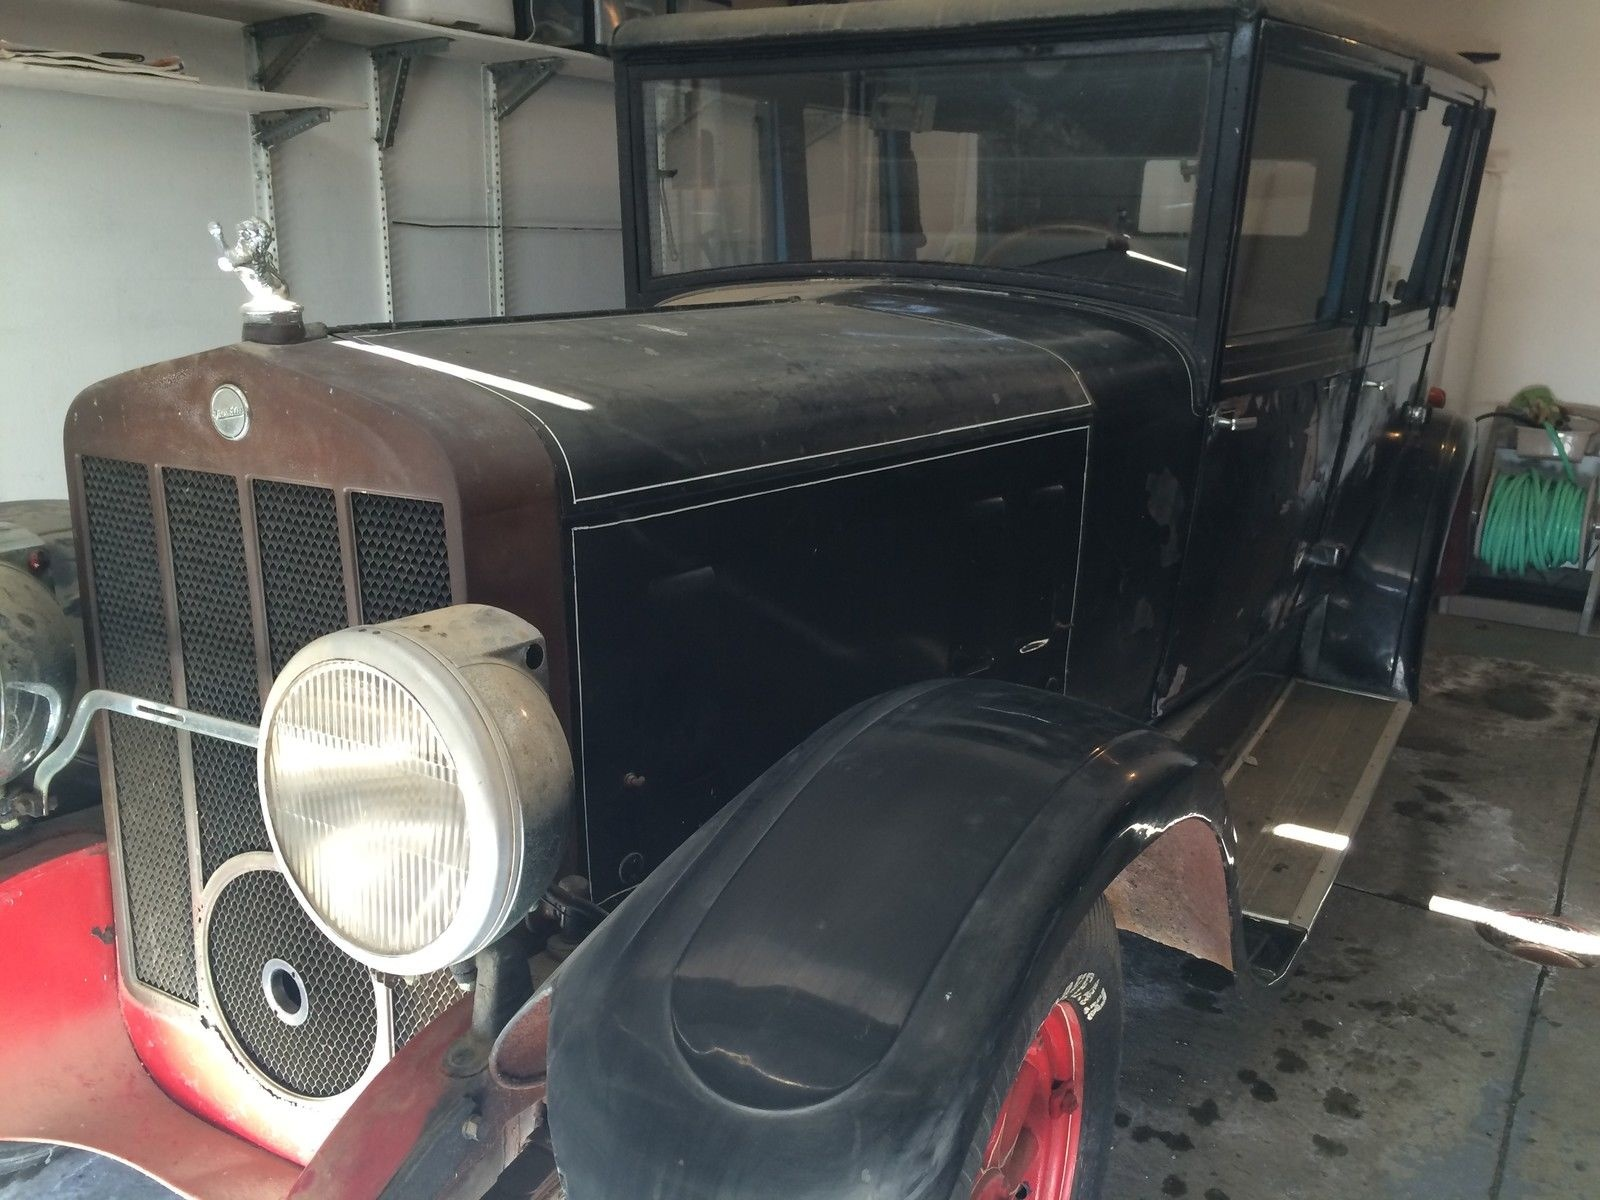 Diesel Engine For Sale >> Aircooled Baby For Sale Again: 1928 Franklin Airman